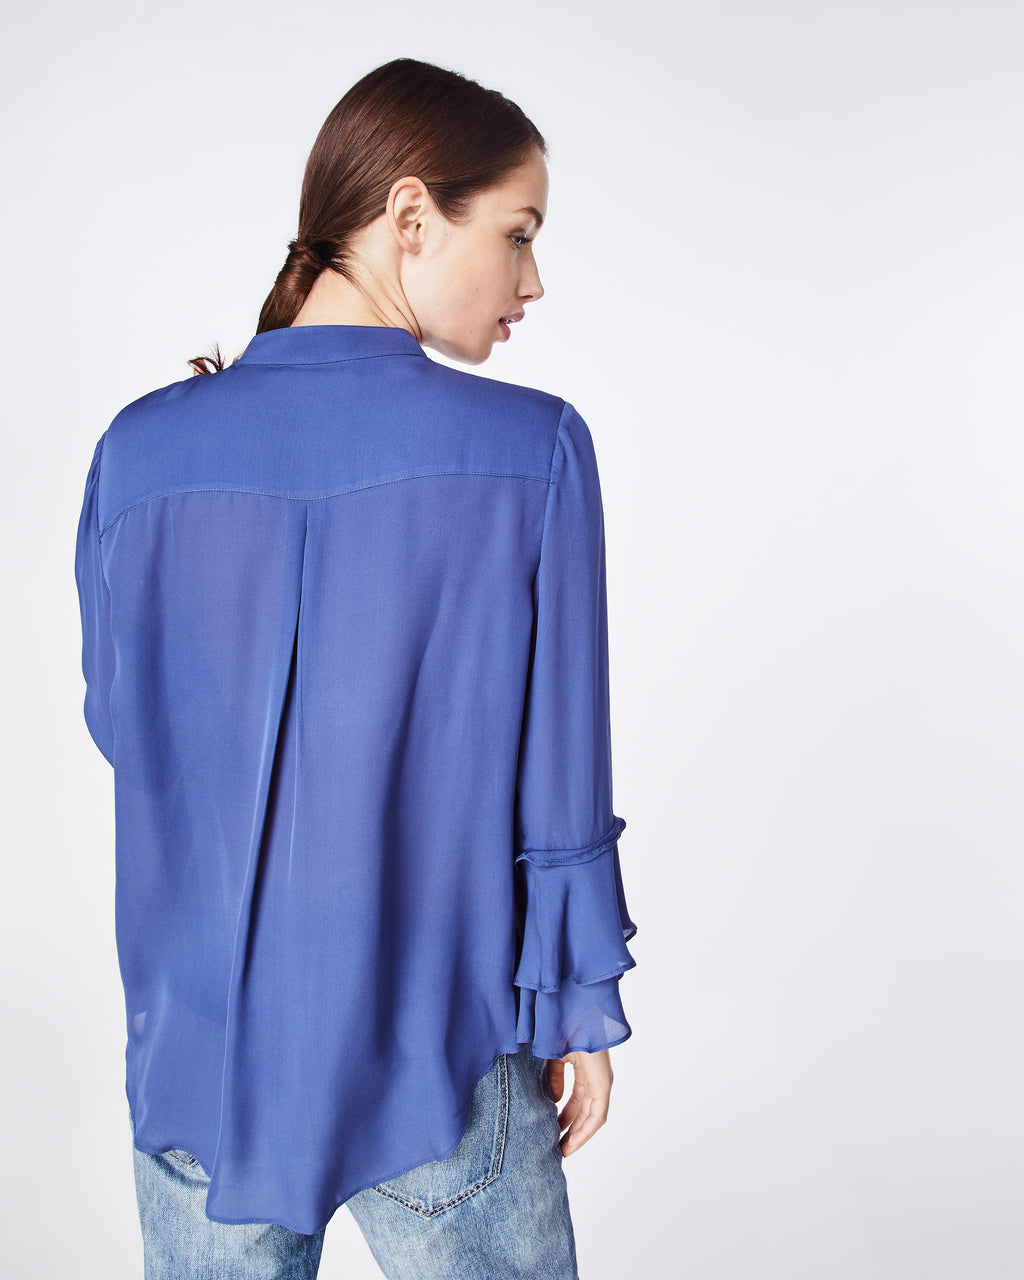 BG10320 - SOLID SILK BLEND RUFFLE SLEEVE BLOUSE - tops - blouses - A CLASSIC SILK BLEND SHEER BLOUSE THAT FEATURES A RUFFLES ON THE SLEEVES. EASY TO WEAR TO WORK OR ON THE WEEKEND.